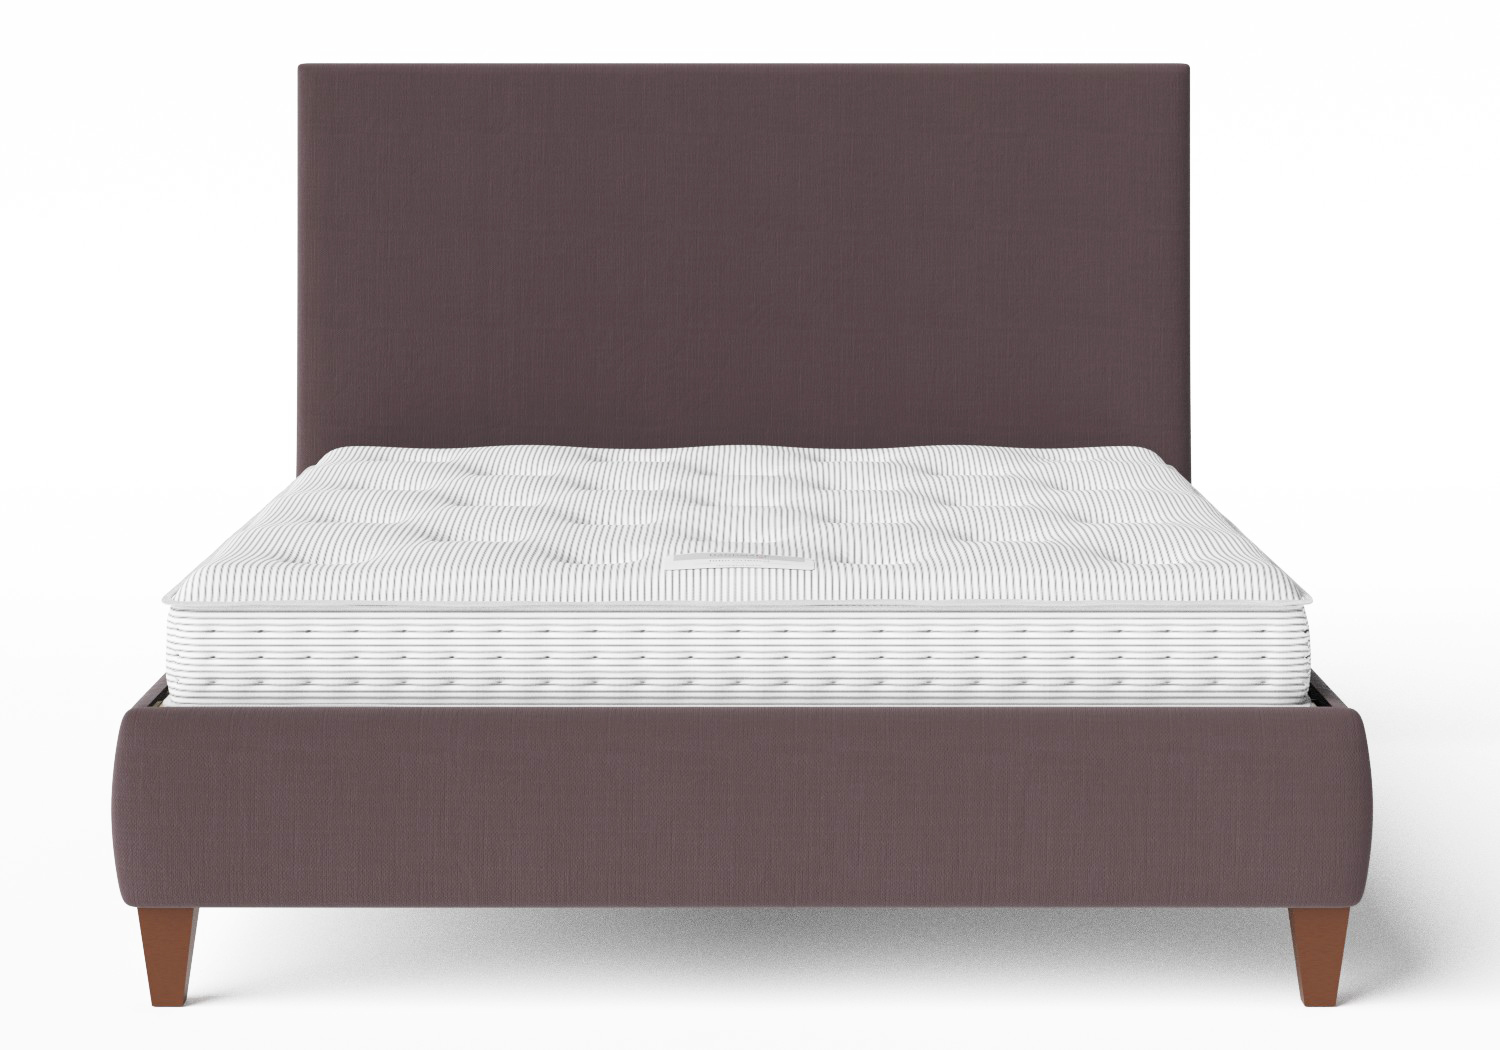 Yushan Upholstered Bed in Aubergine fabric shown with Juno 1 mattress